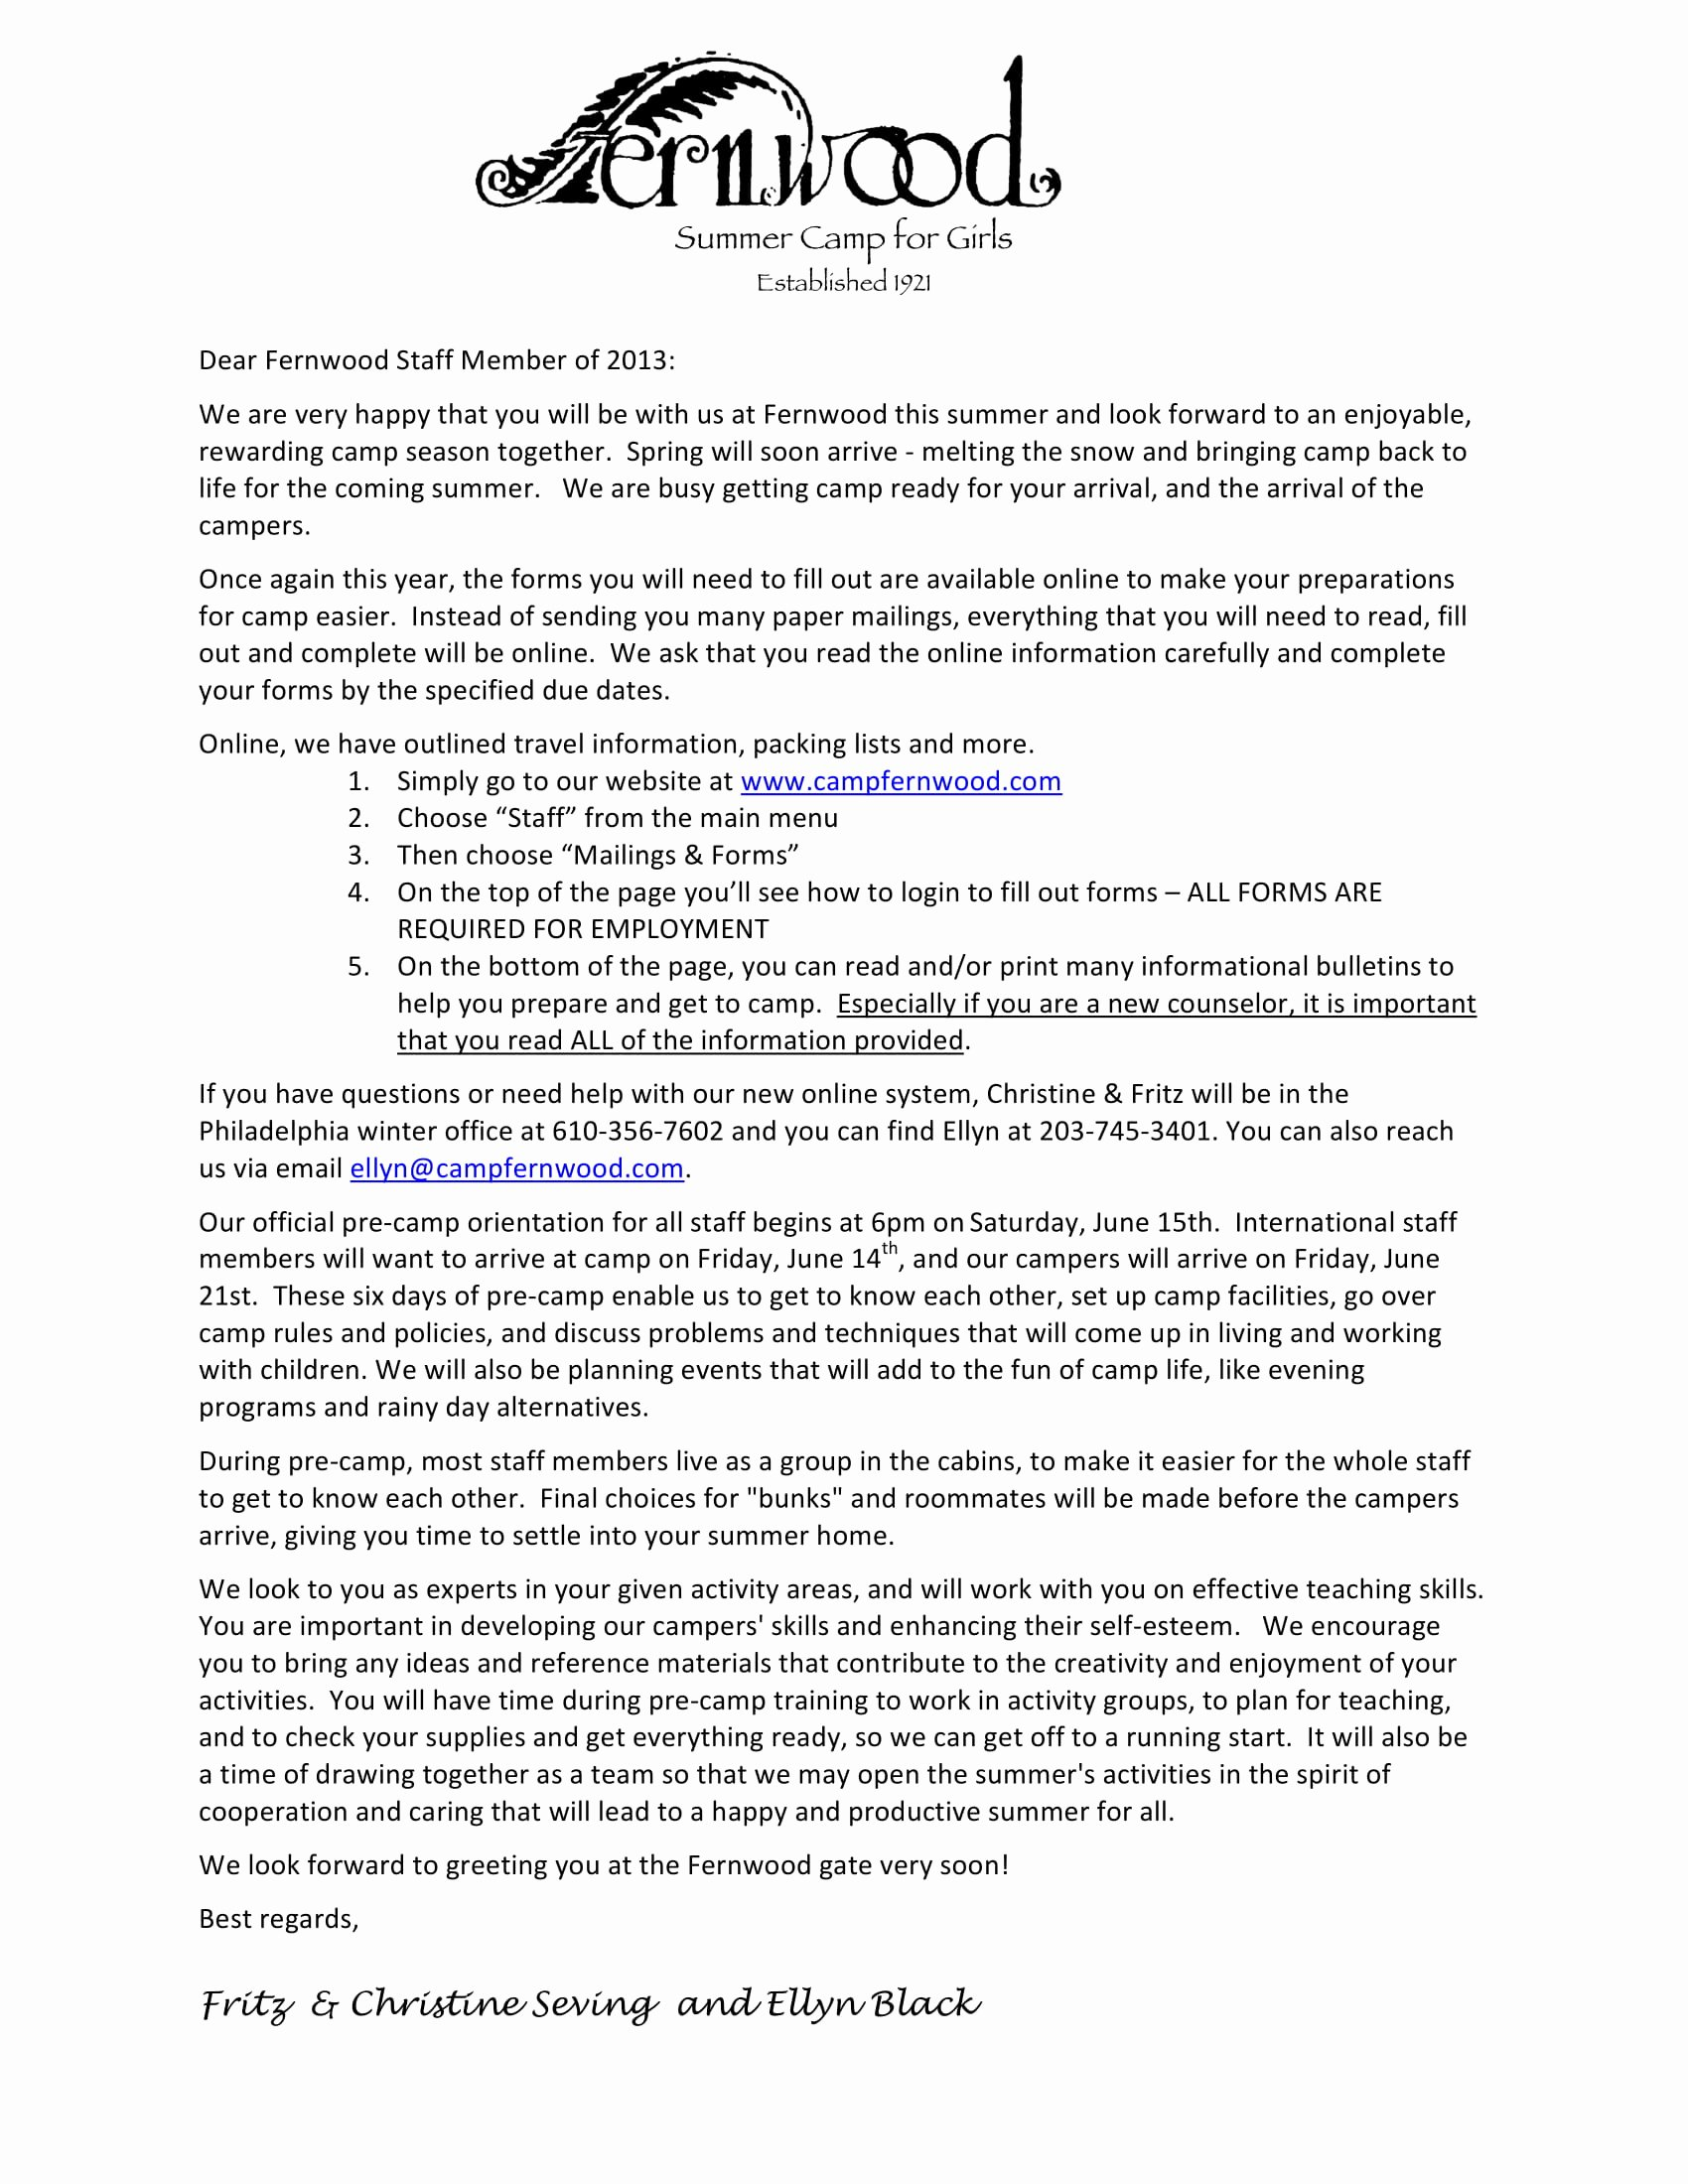 New Hire Letter Samples New 9 New Hire Wel E Letter Examples Pdf